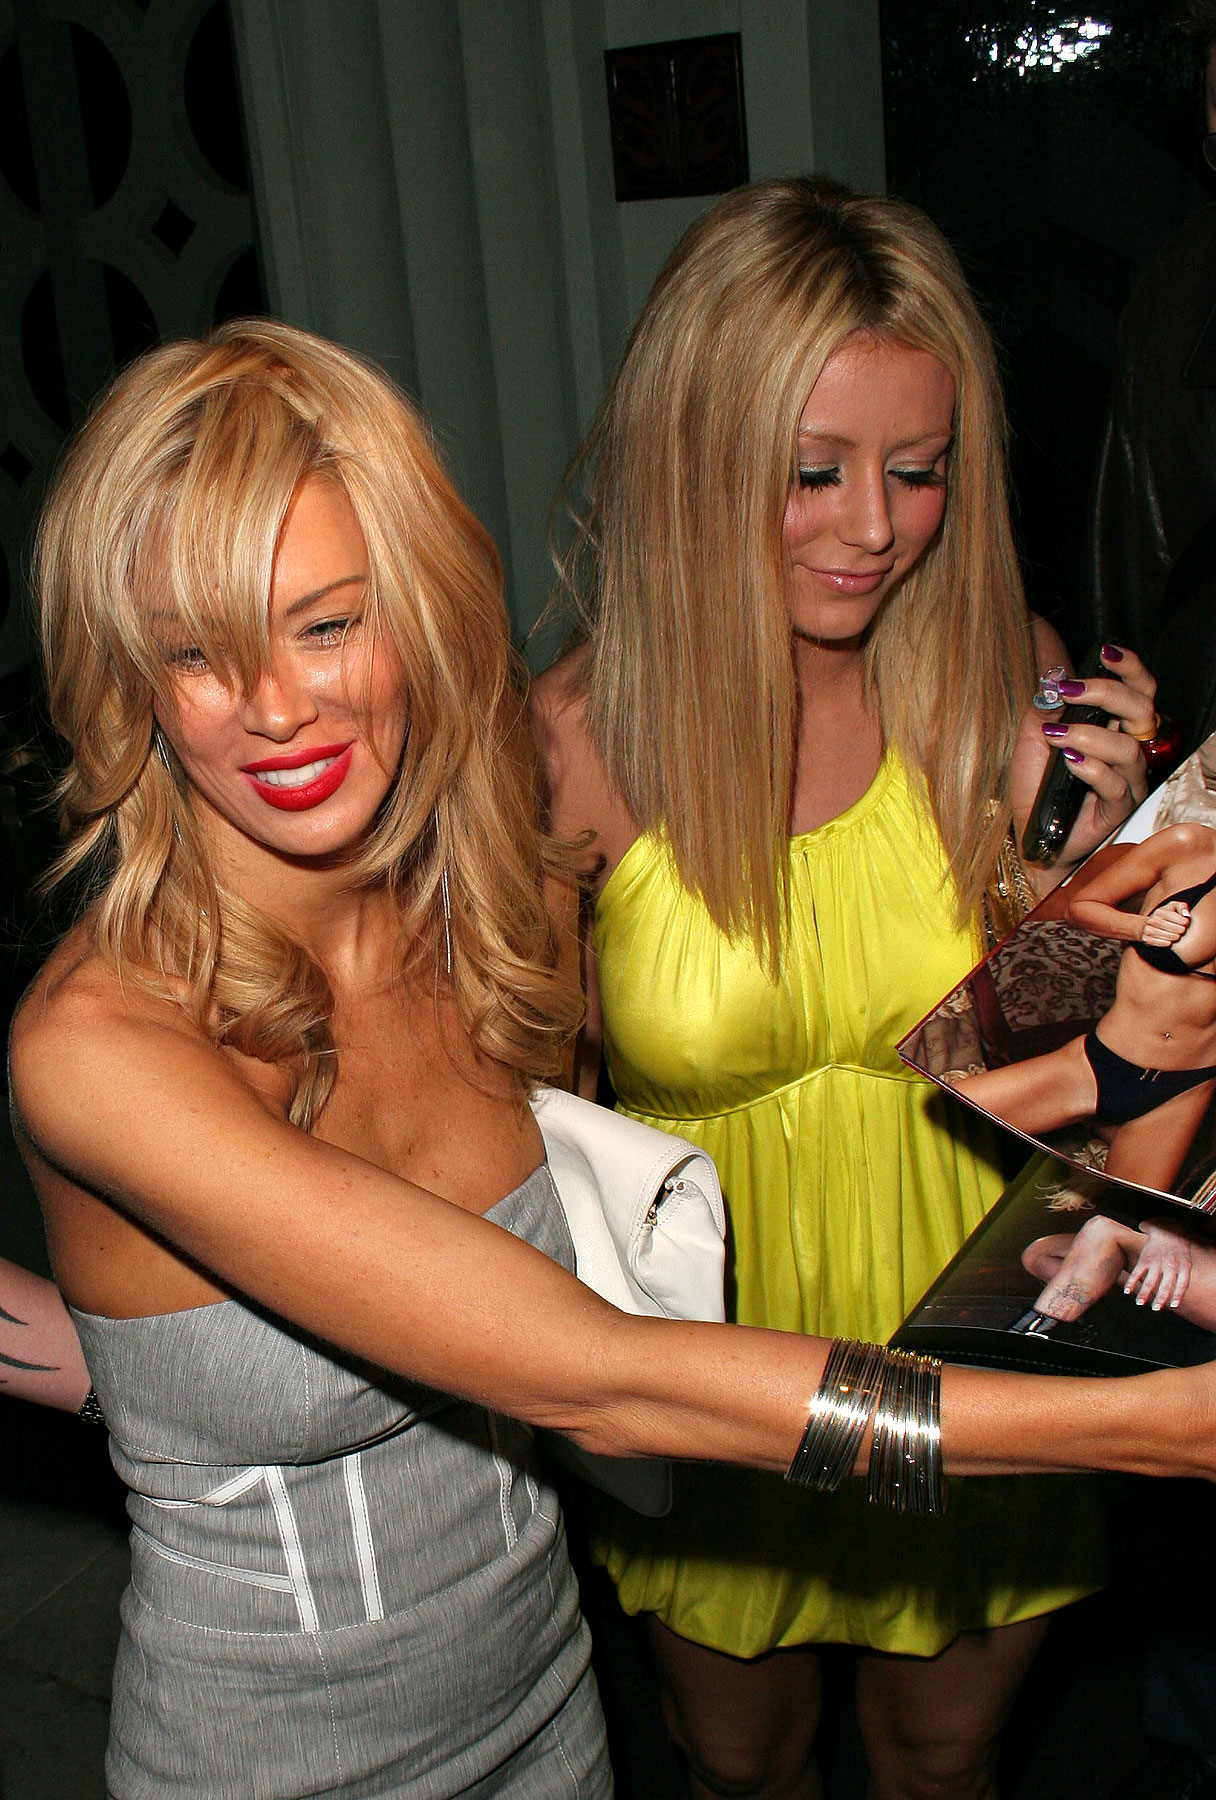 Jenna Jameson and Aubrey O'Day